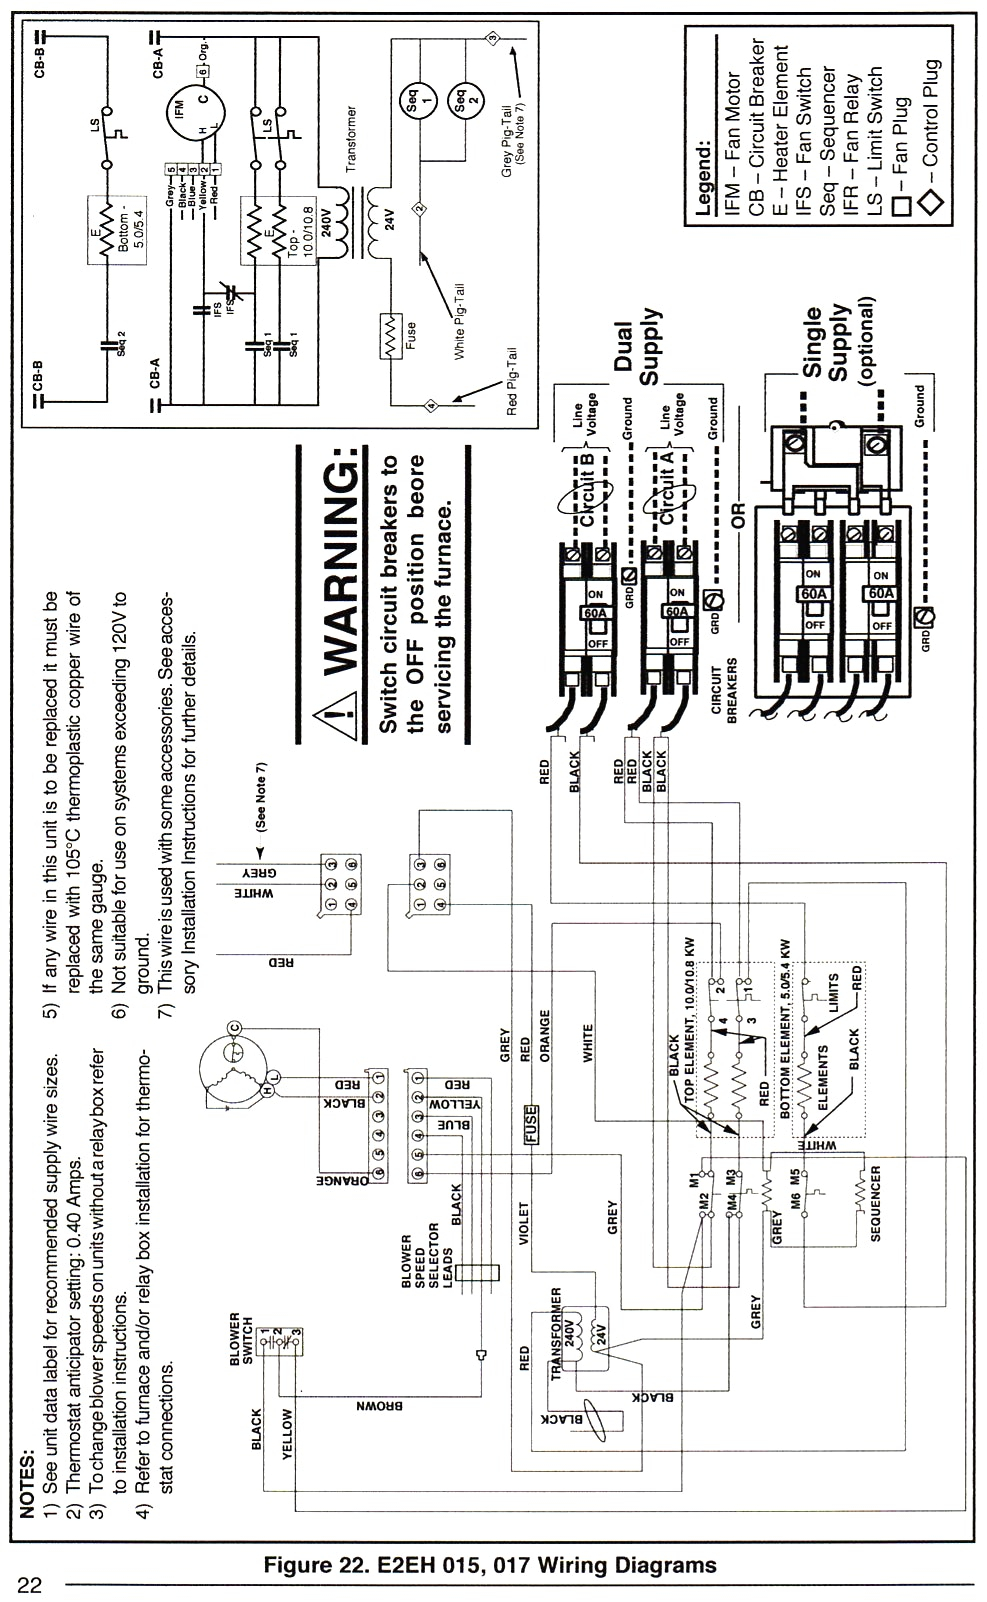 Nordyne Heat Pump Wiring Diagram Data Goodman View Q1ra